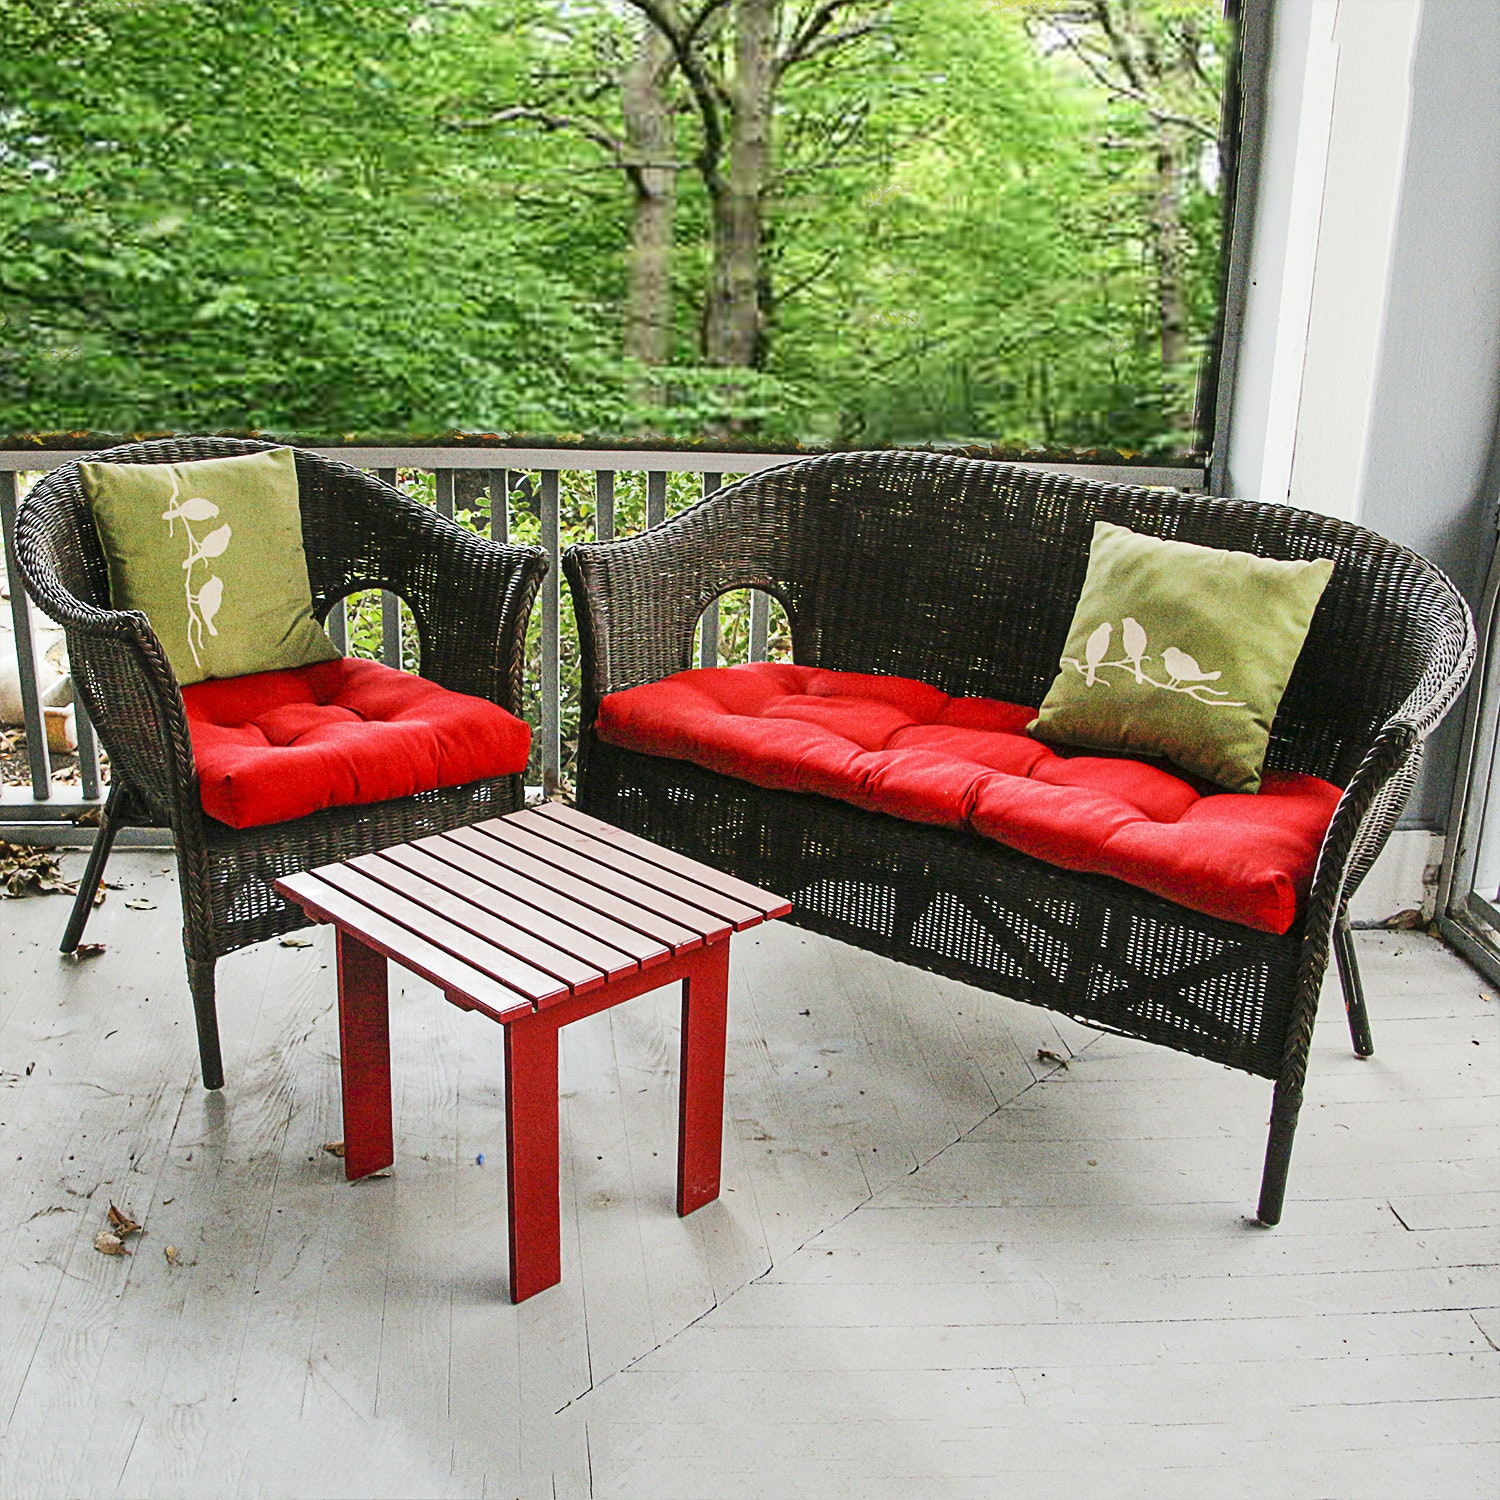 Set of Brown Wicker Patio Furniture and Small Red Accent